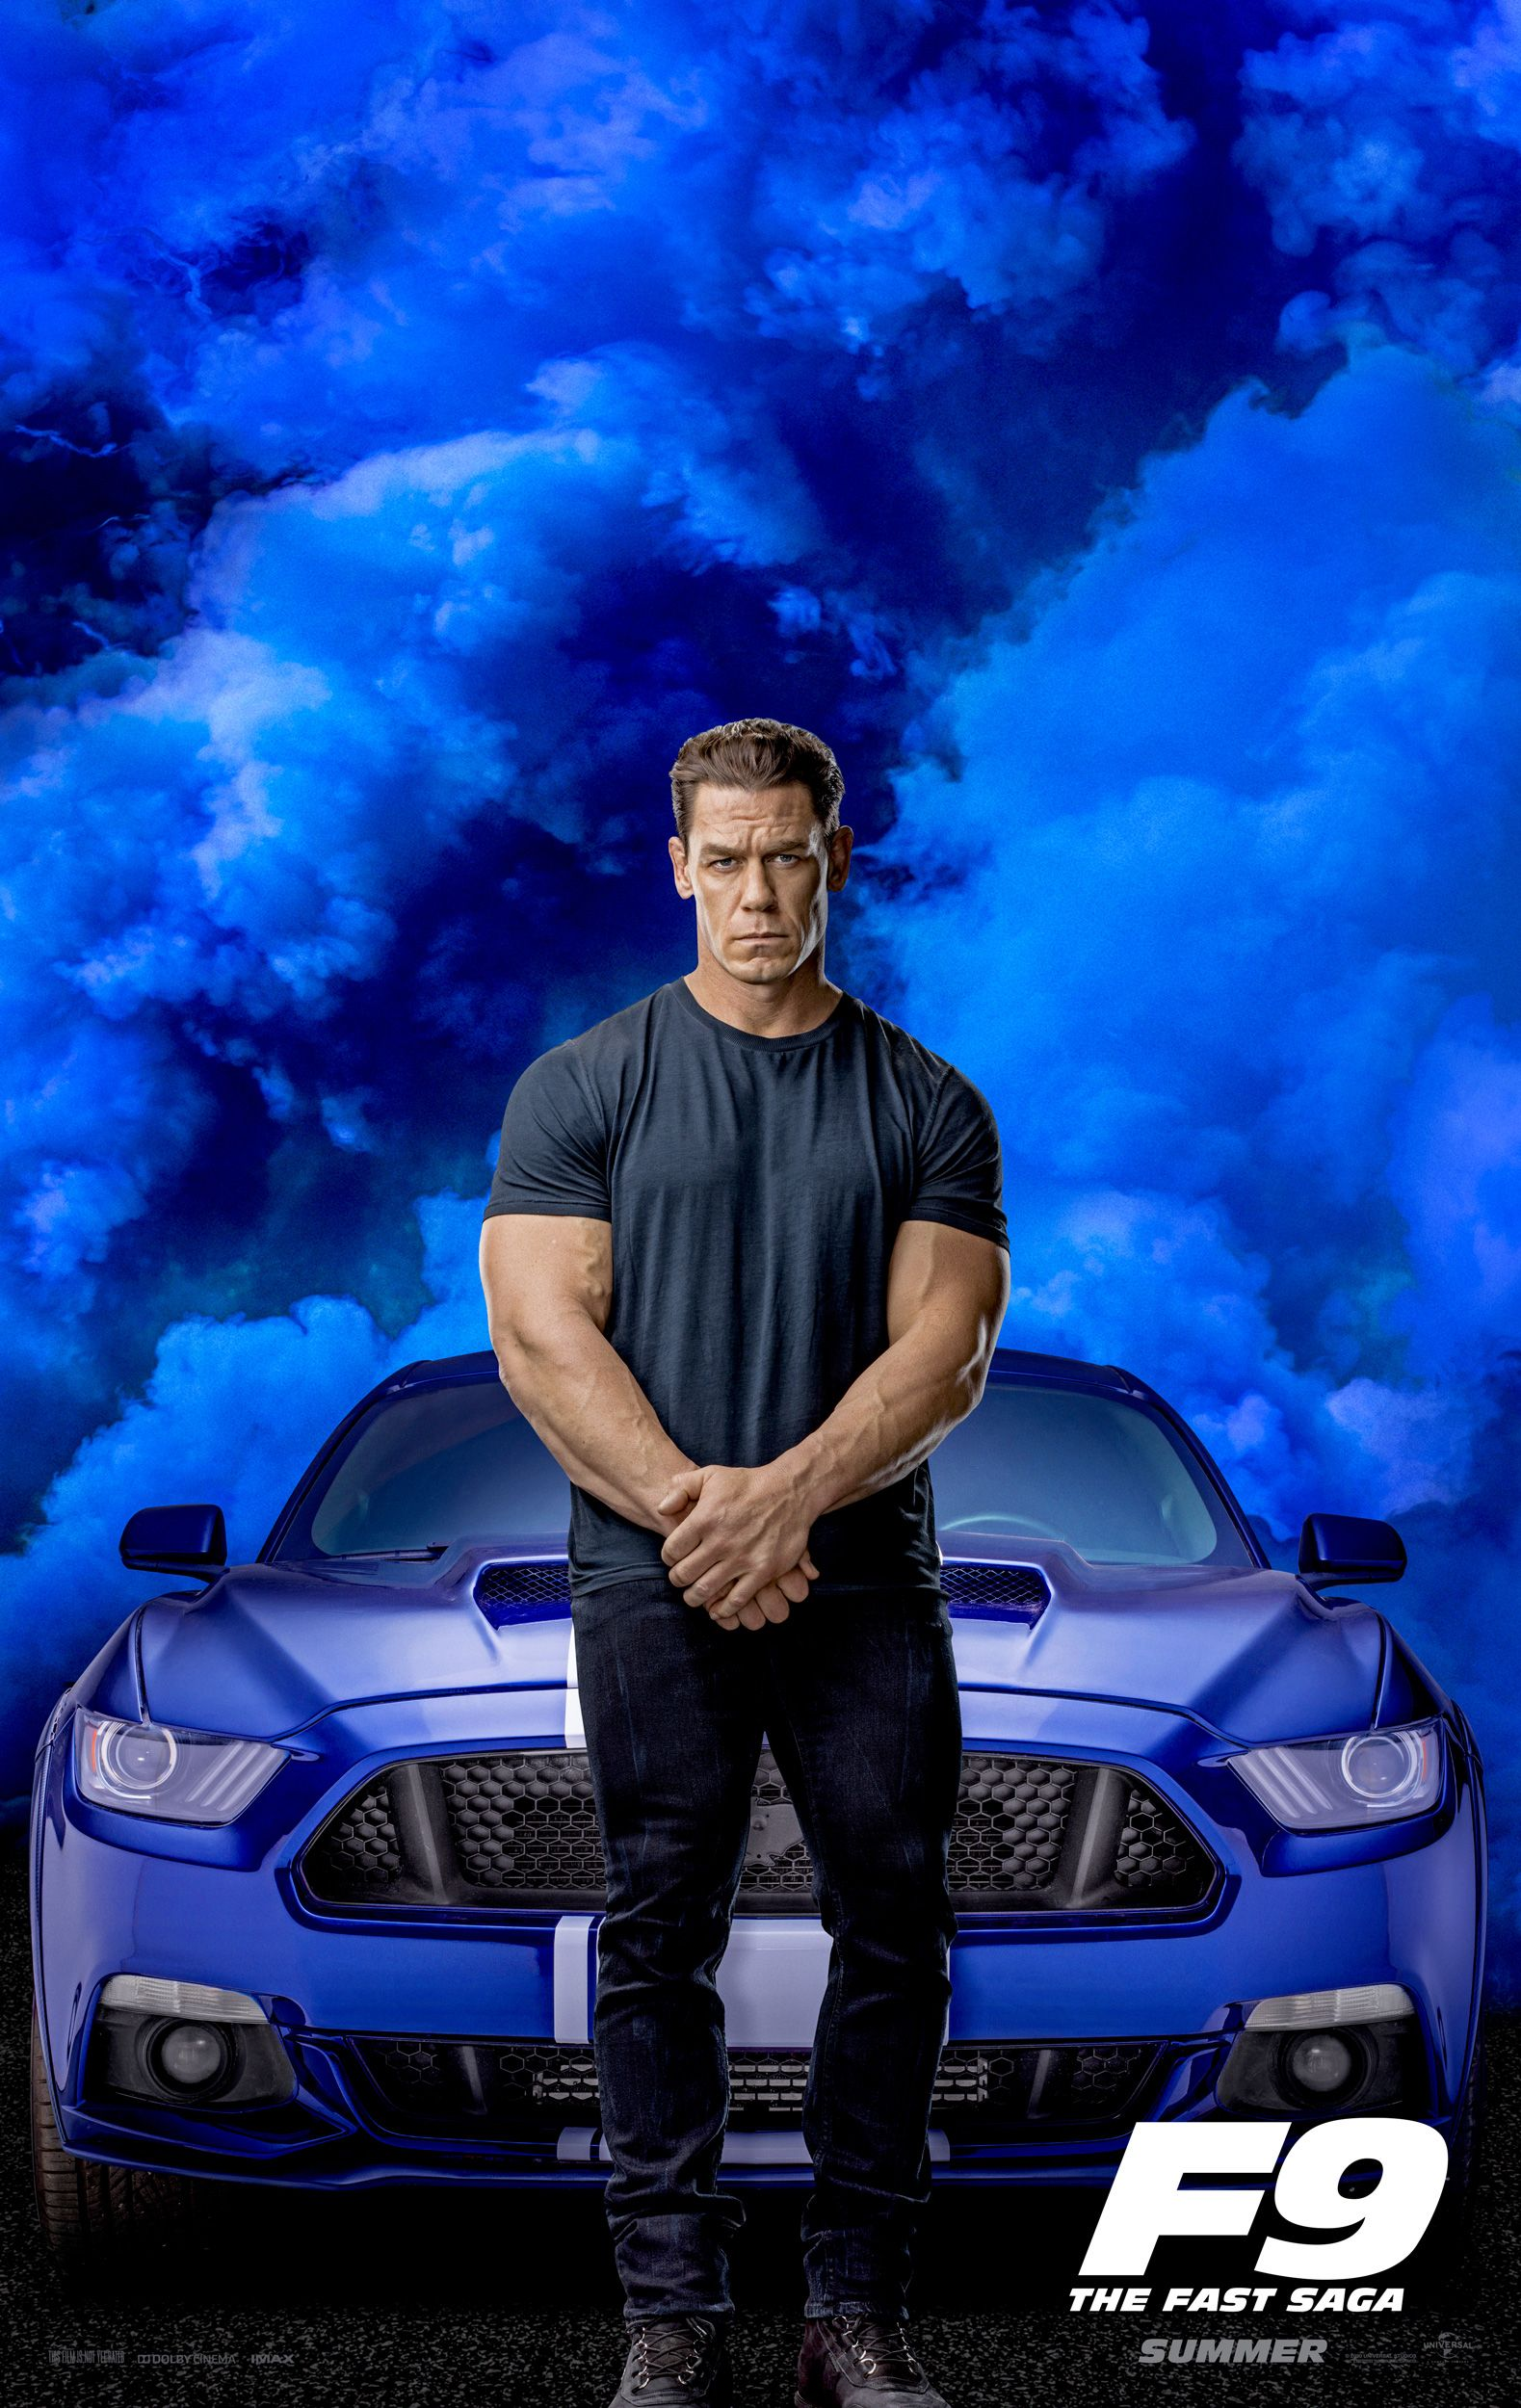 fast and furious 9 - photo #4